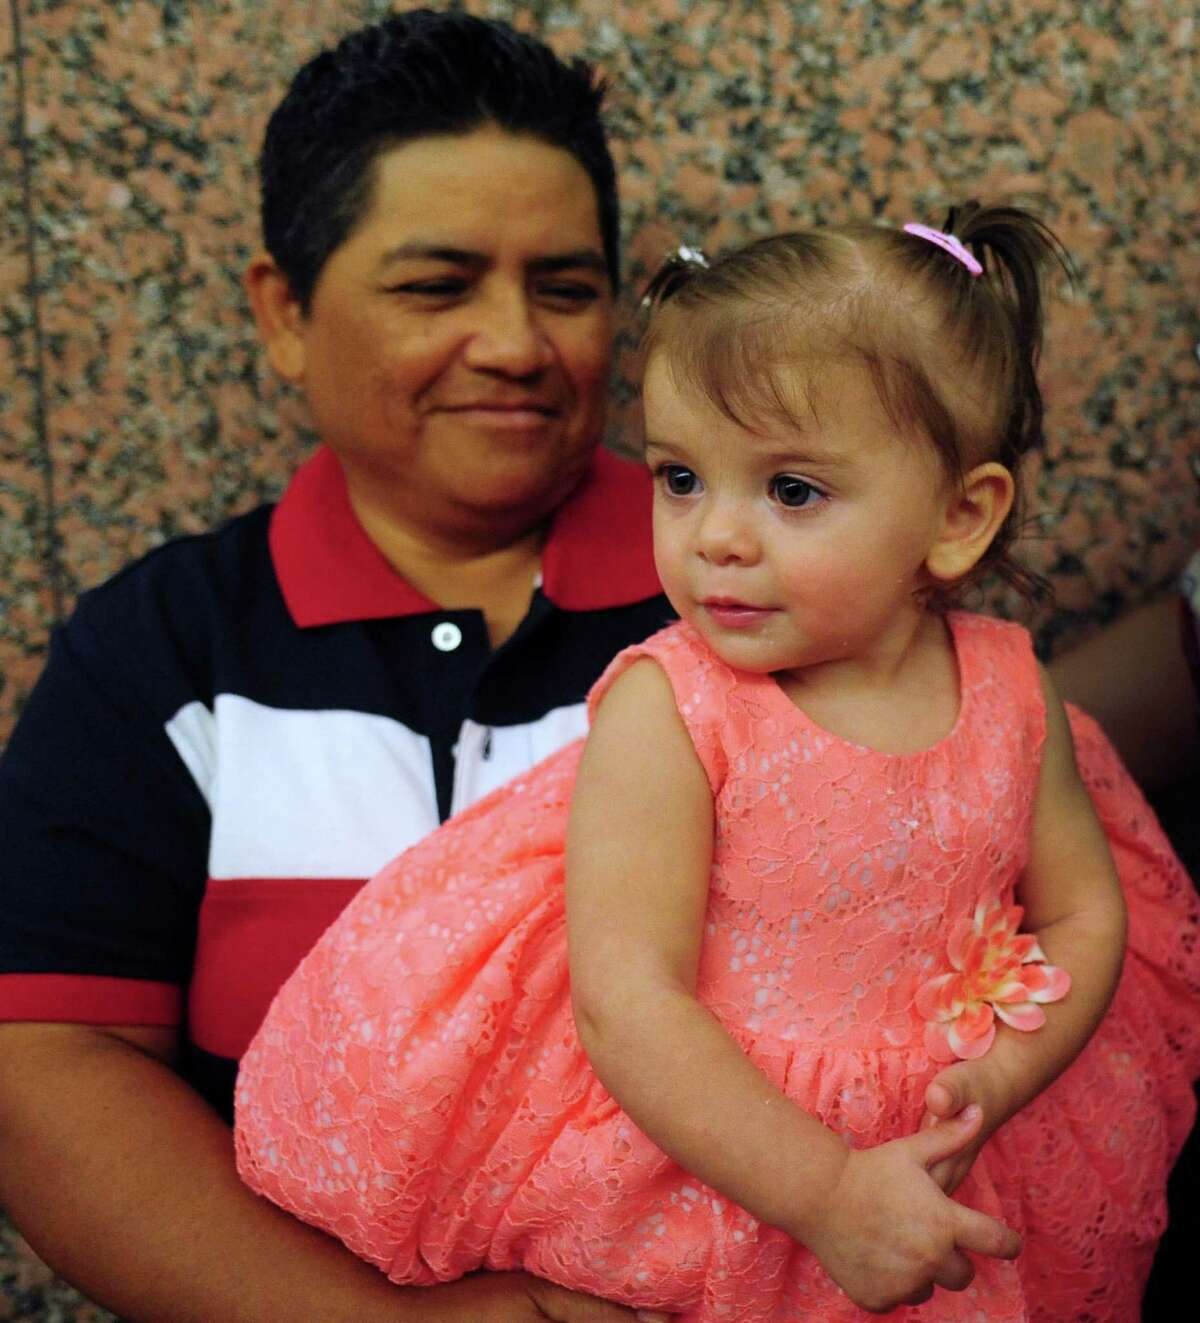 Leticia Ruiz holds Ski Ruiz, a girl that she and her partner, Sabrina Ruiz, adopted during a mass adoption ceremony in the Bexar County Courthouse on Aug. 8, 2014. Child Advocates San Antonio and Child Protective Services representatives attend the monthly event.